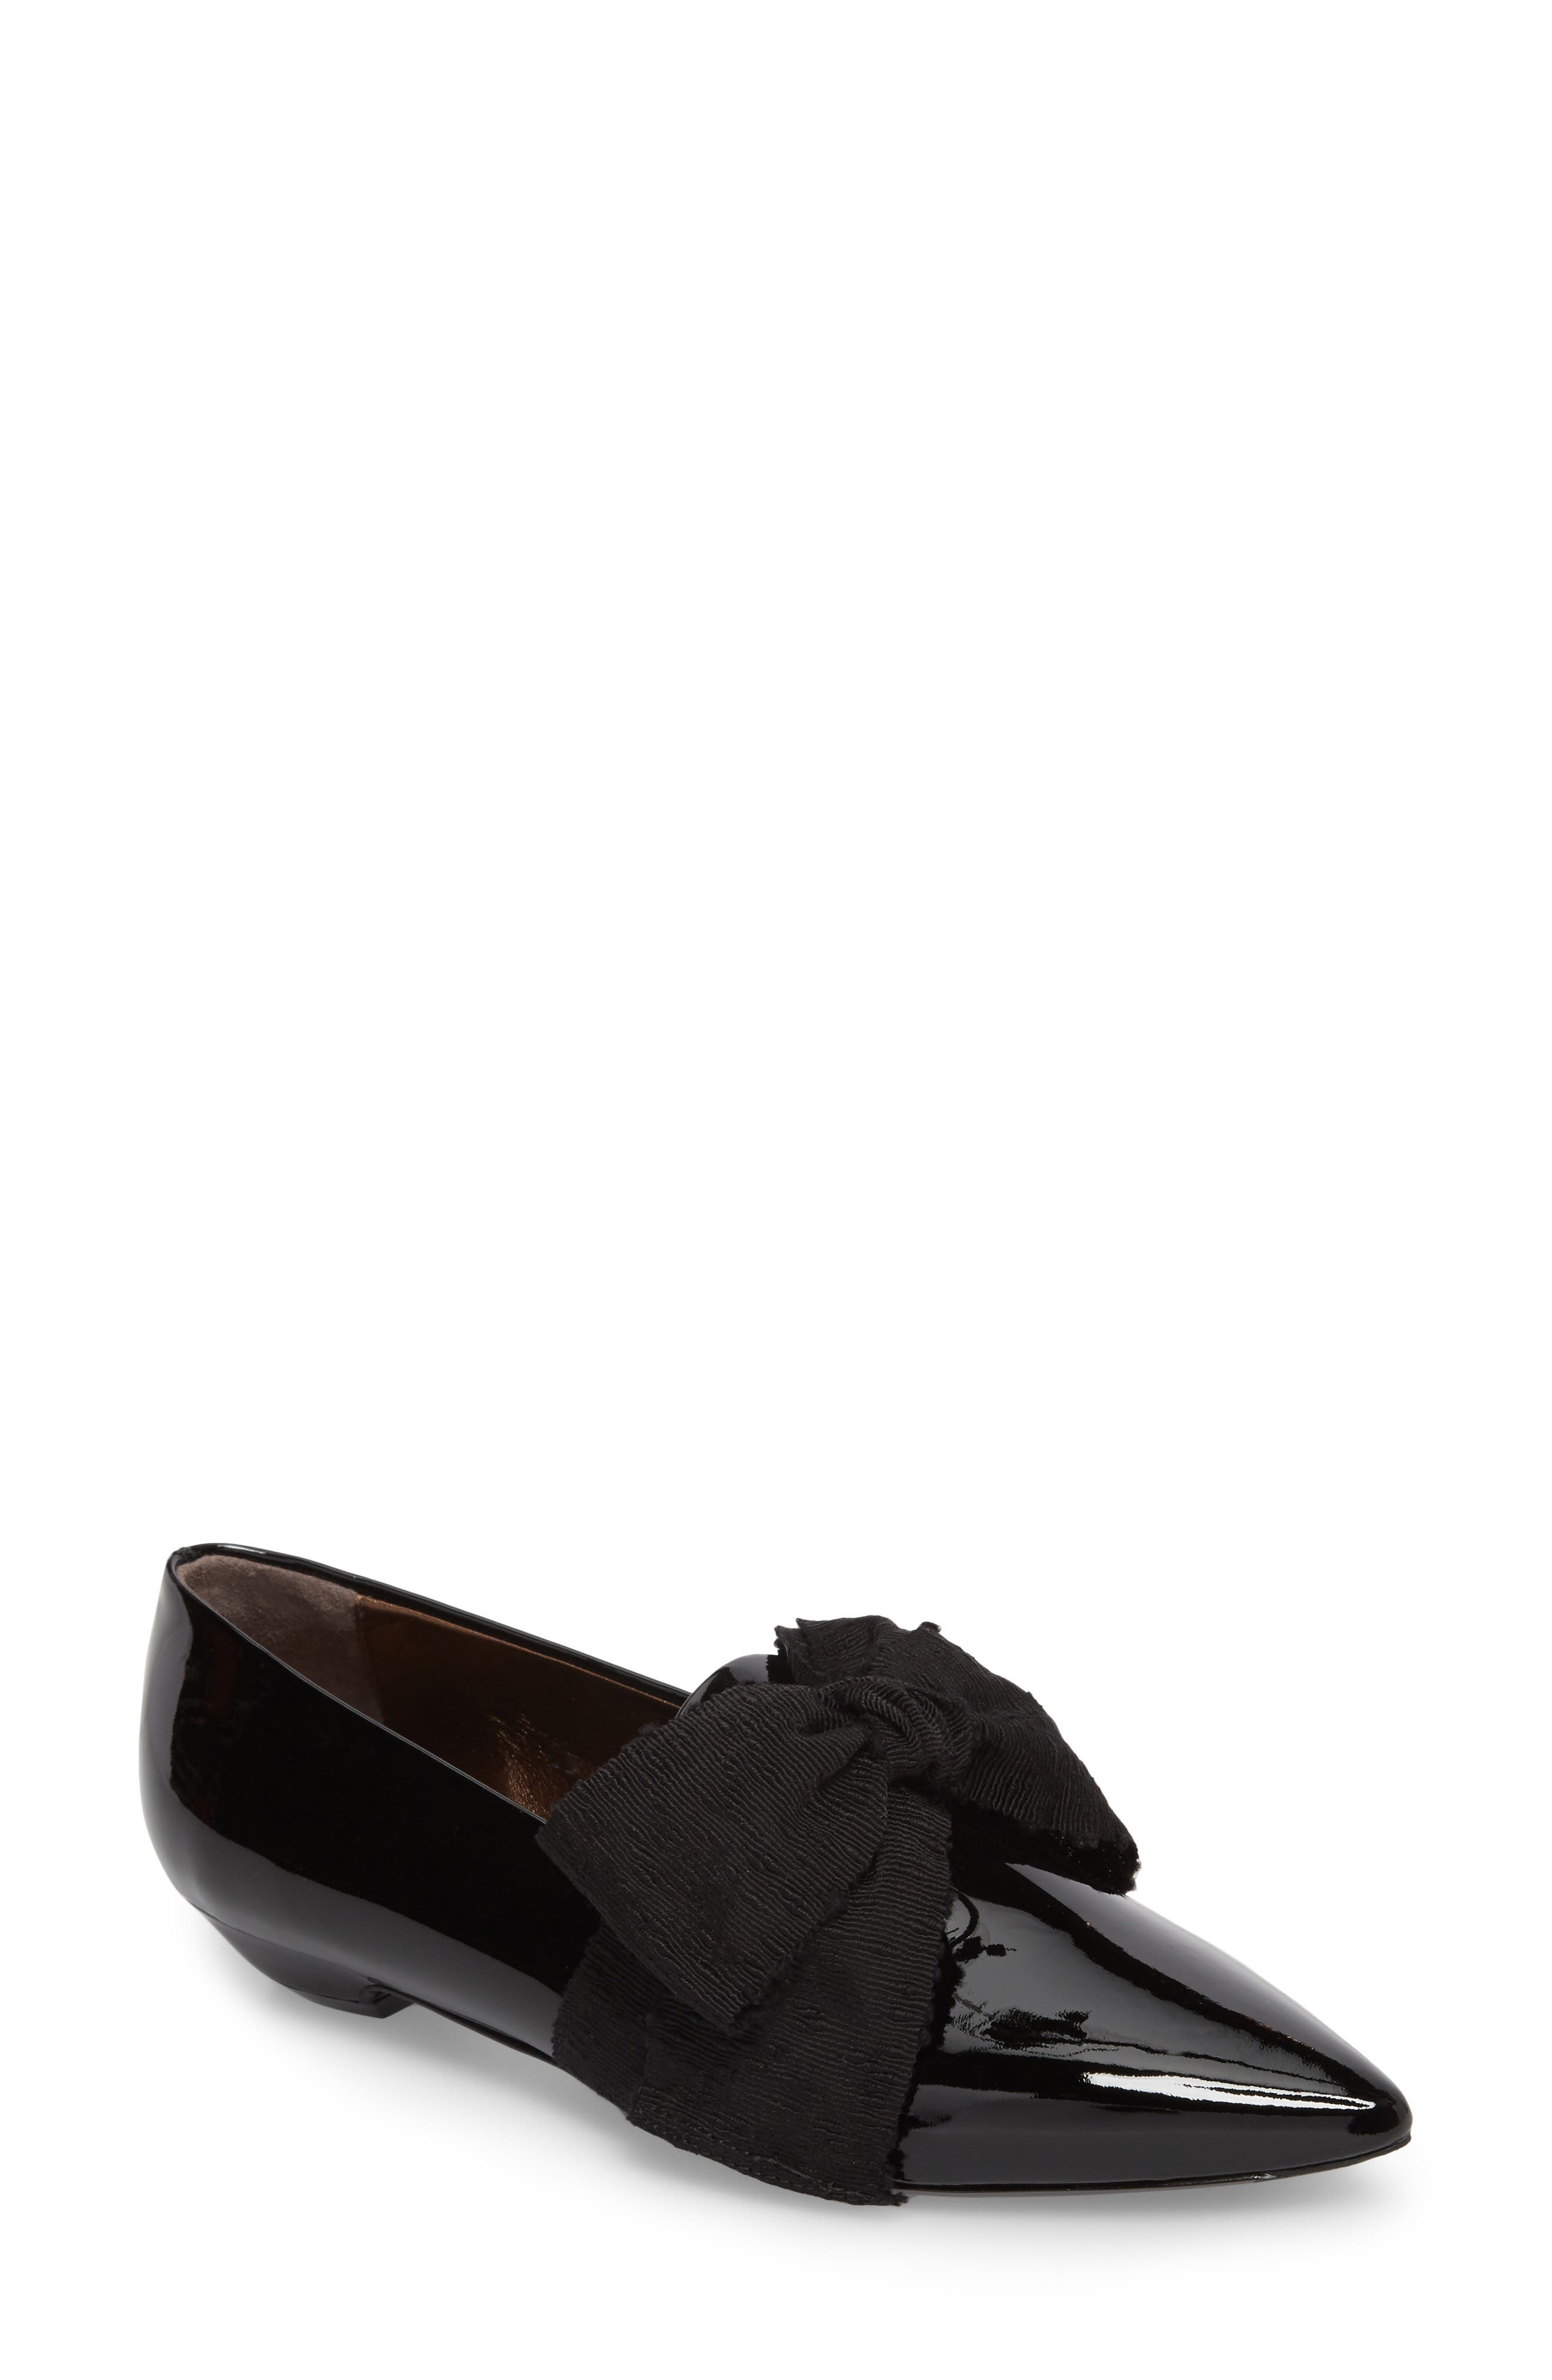 Maggie Bow Loafer,                         Main,                         color, 001